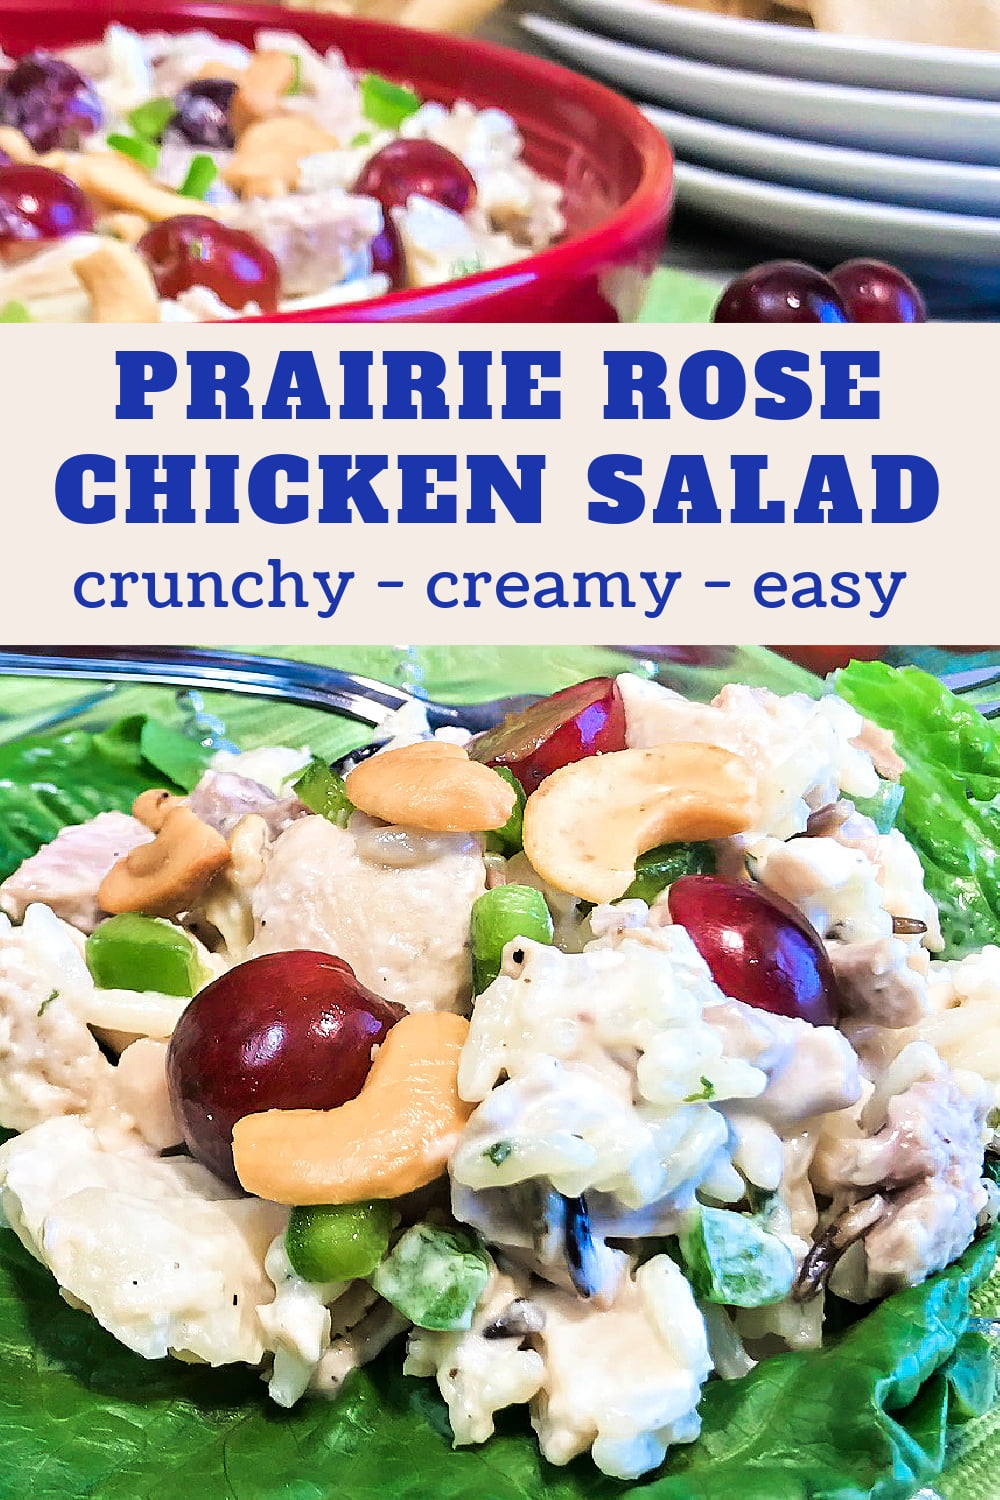 A serving of Prairie Rose Chicken and Wild Rice Salad on a plate.